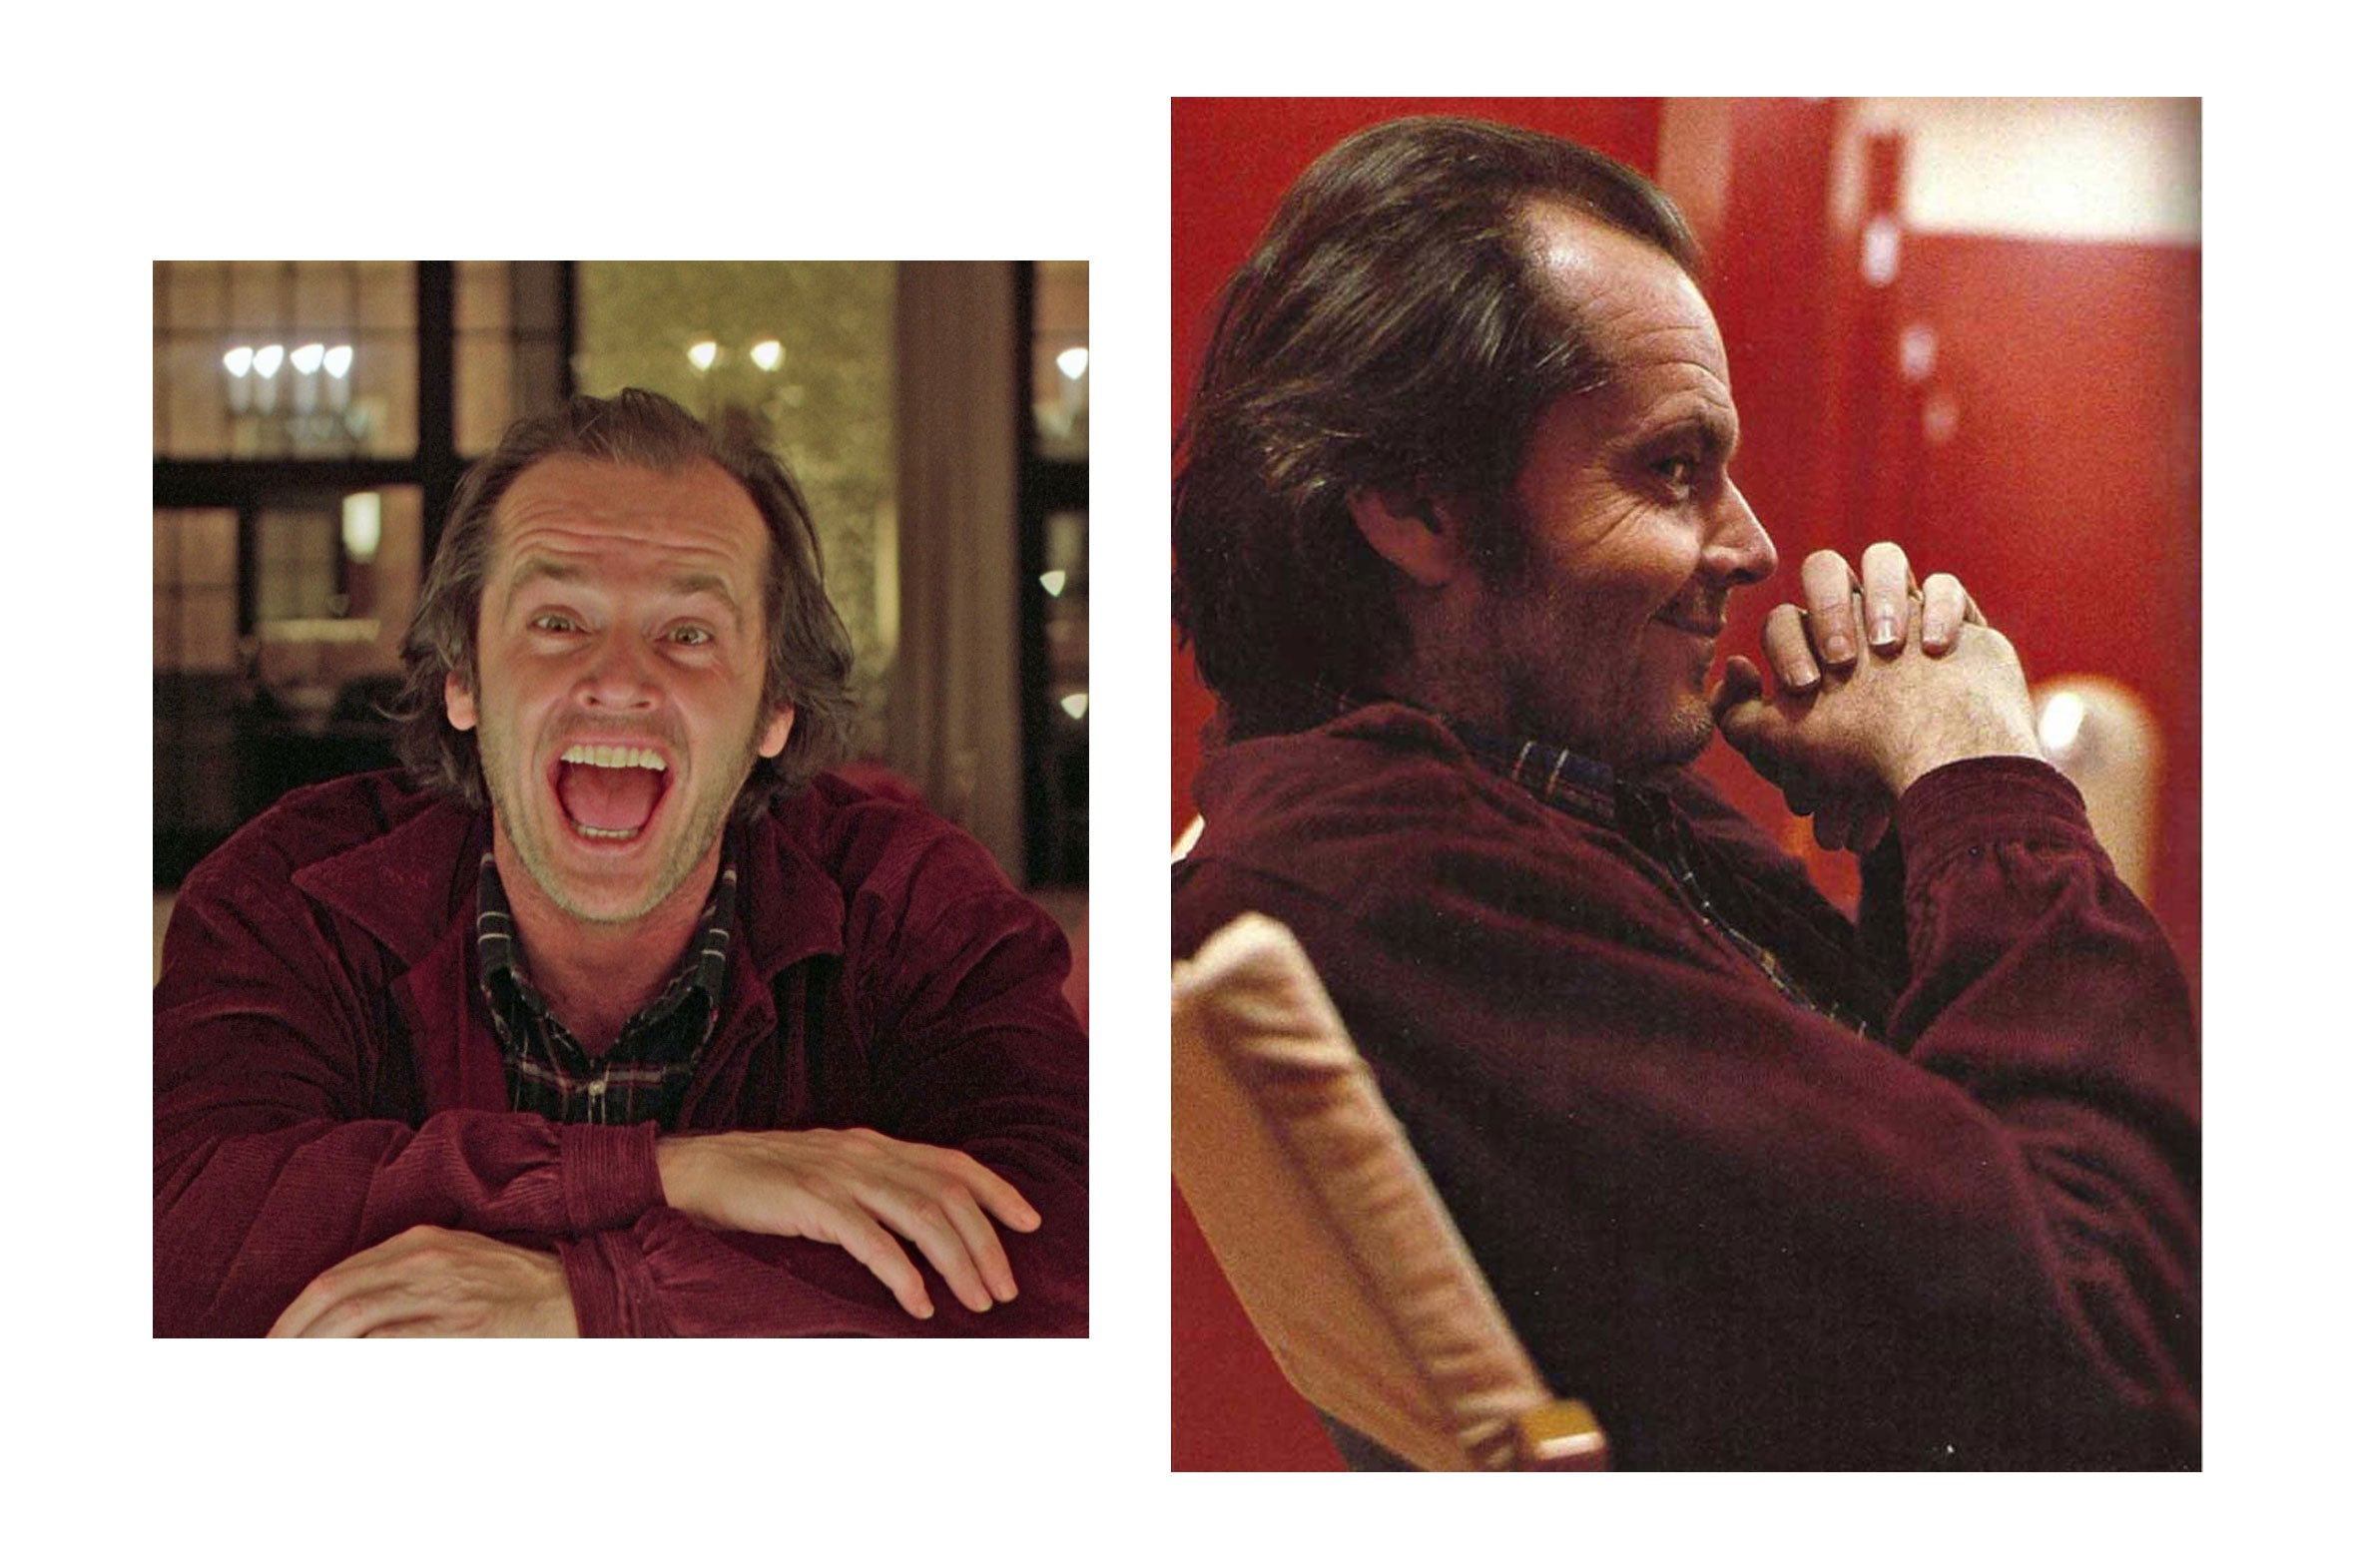 margaret howell jack nicholson the shining corduroy jacket